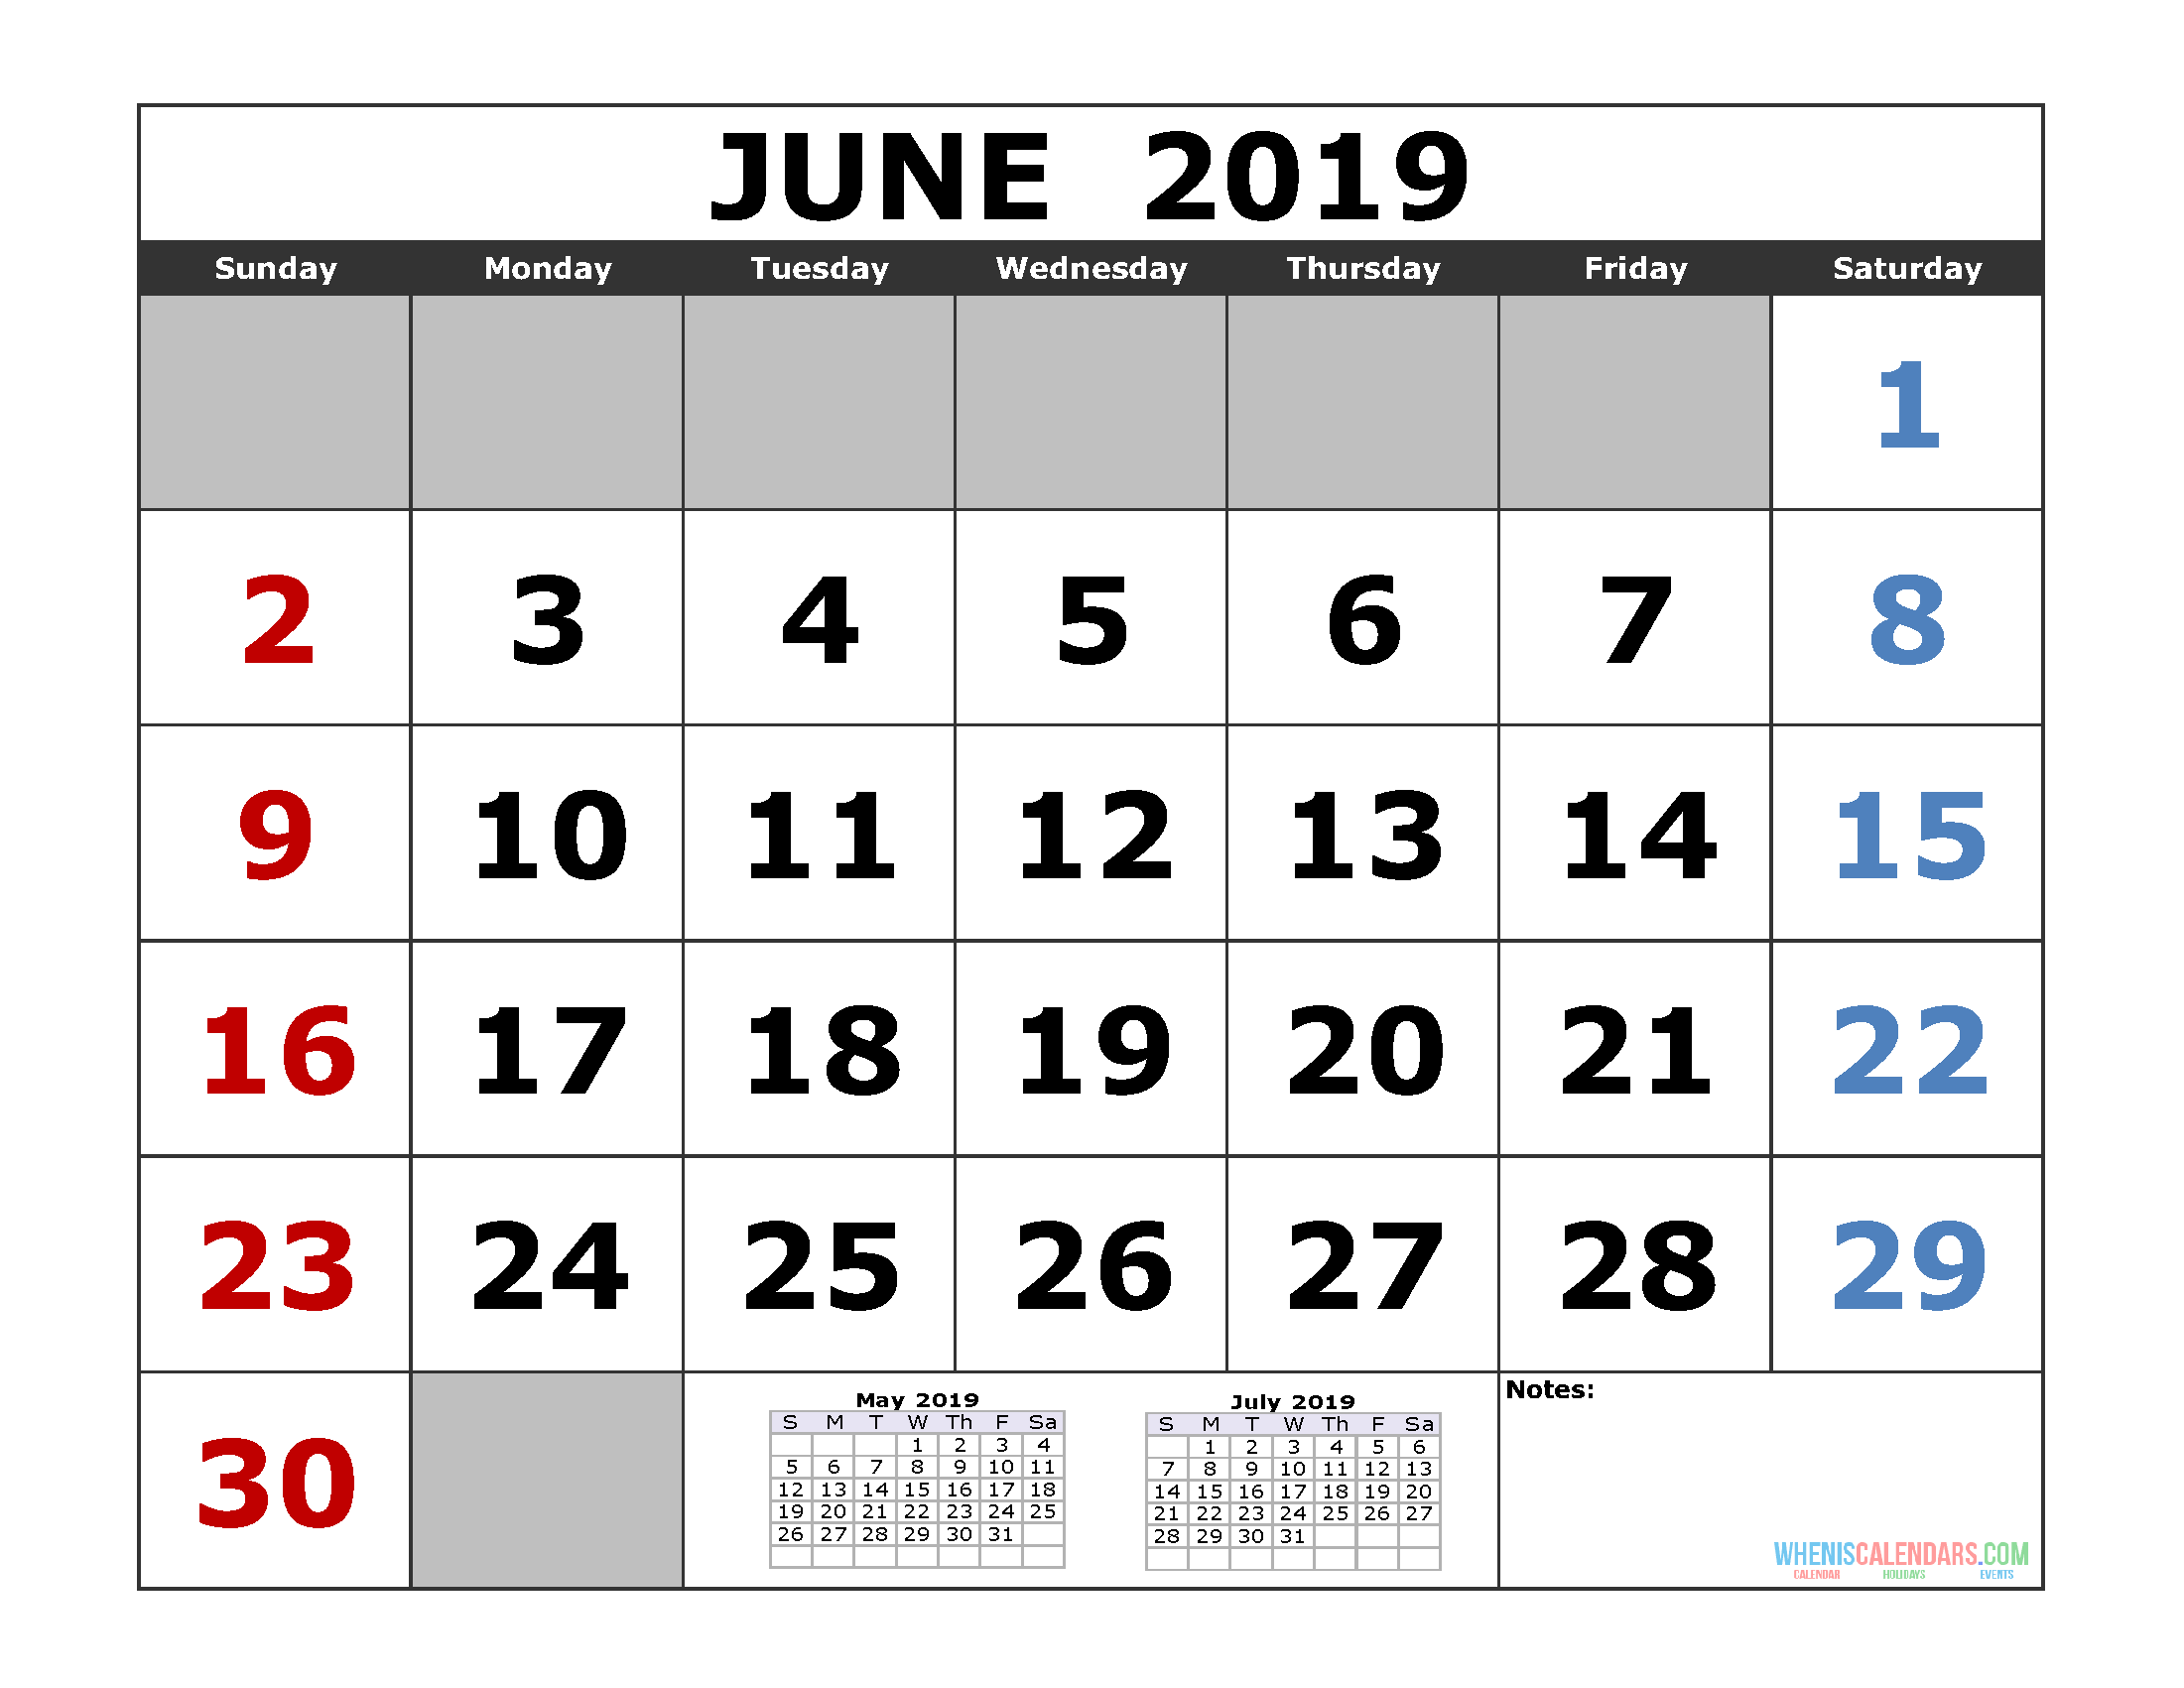 image about Printable 3 Month Calendar identify June 2019 Printable Calendar Template (3 Thirty day period Calendar